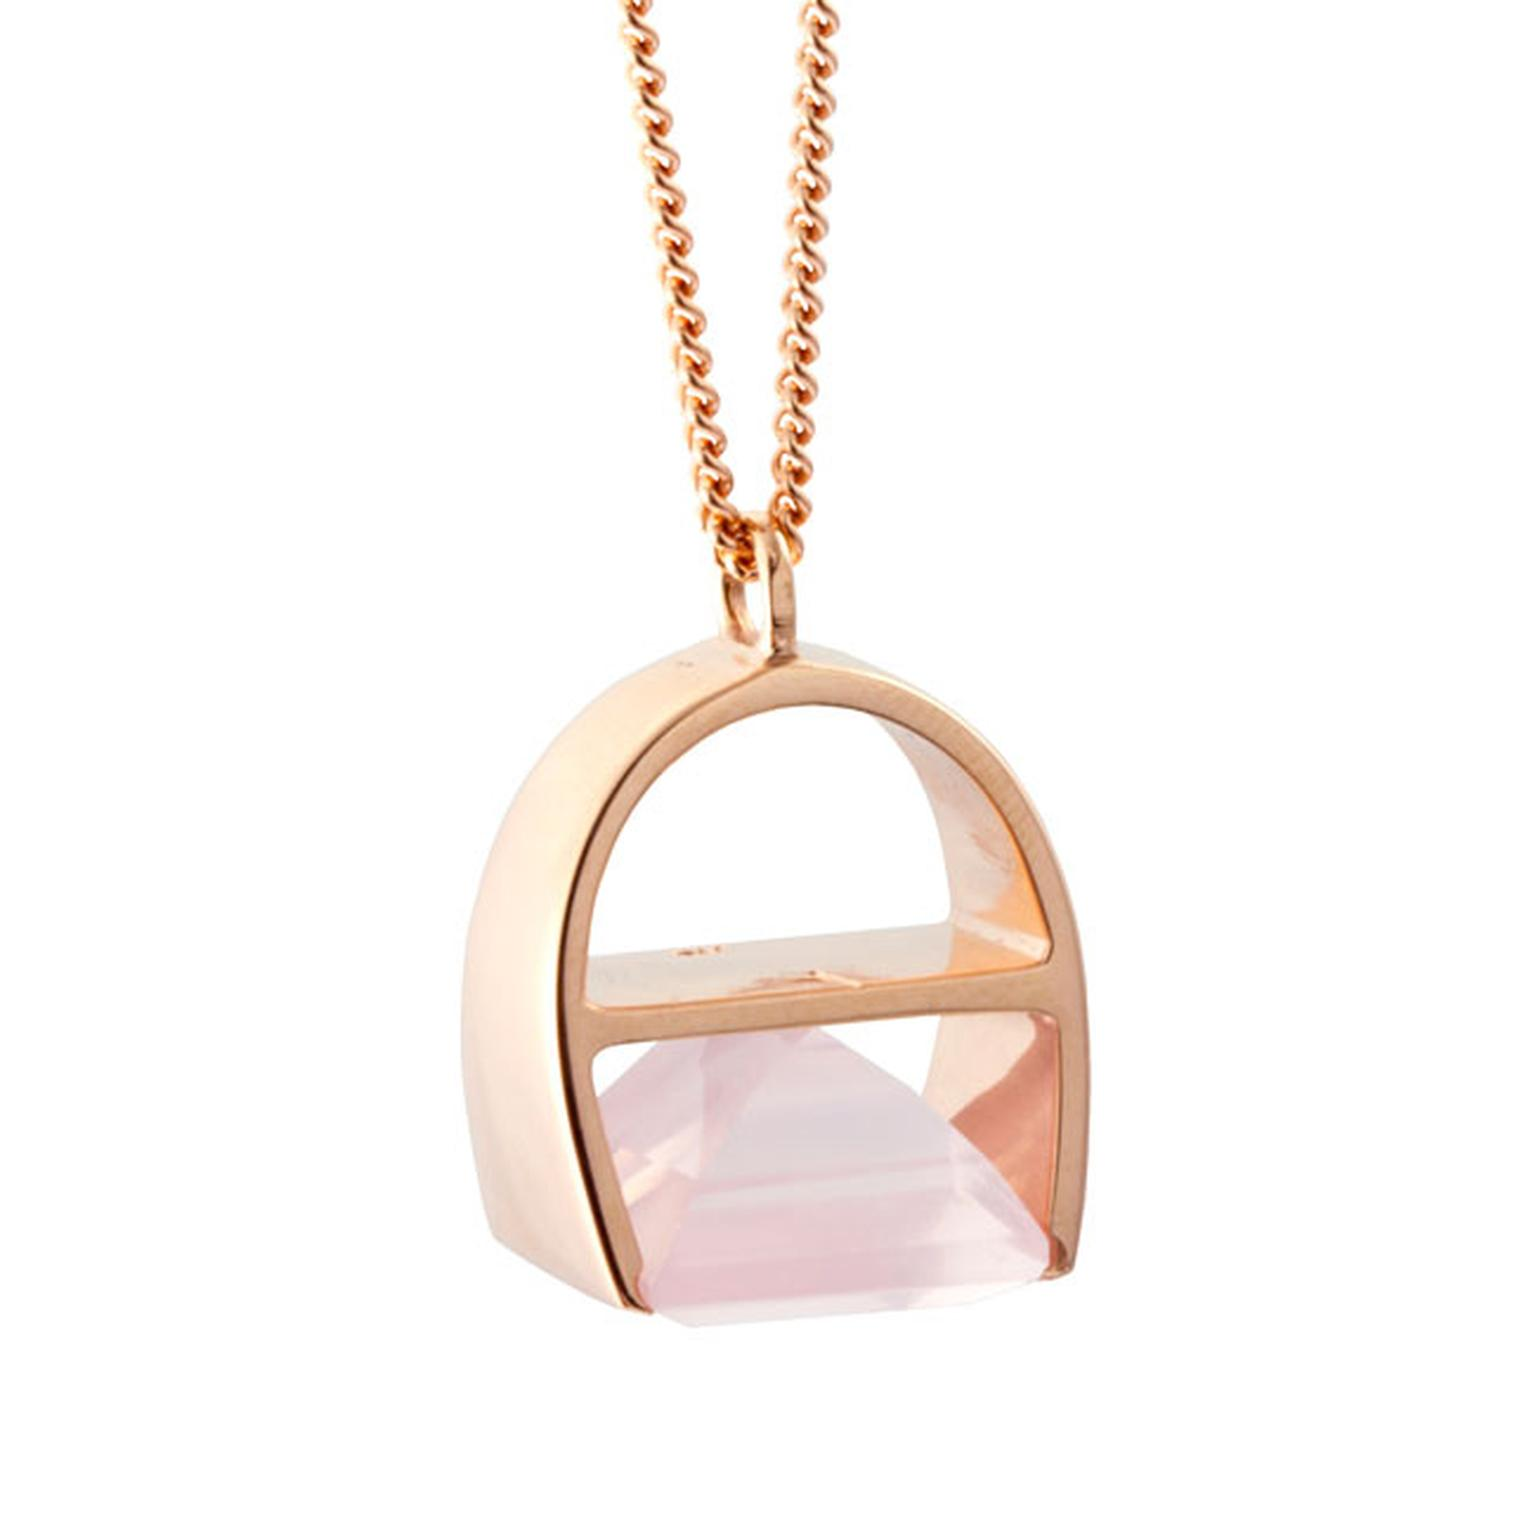 Kattri Parabola rose gold and rose quartz necklace_main